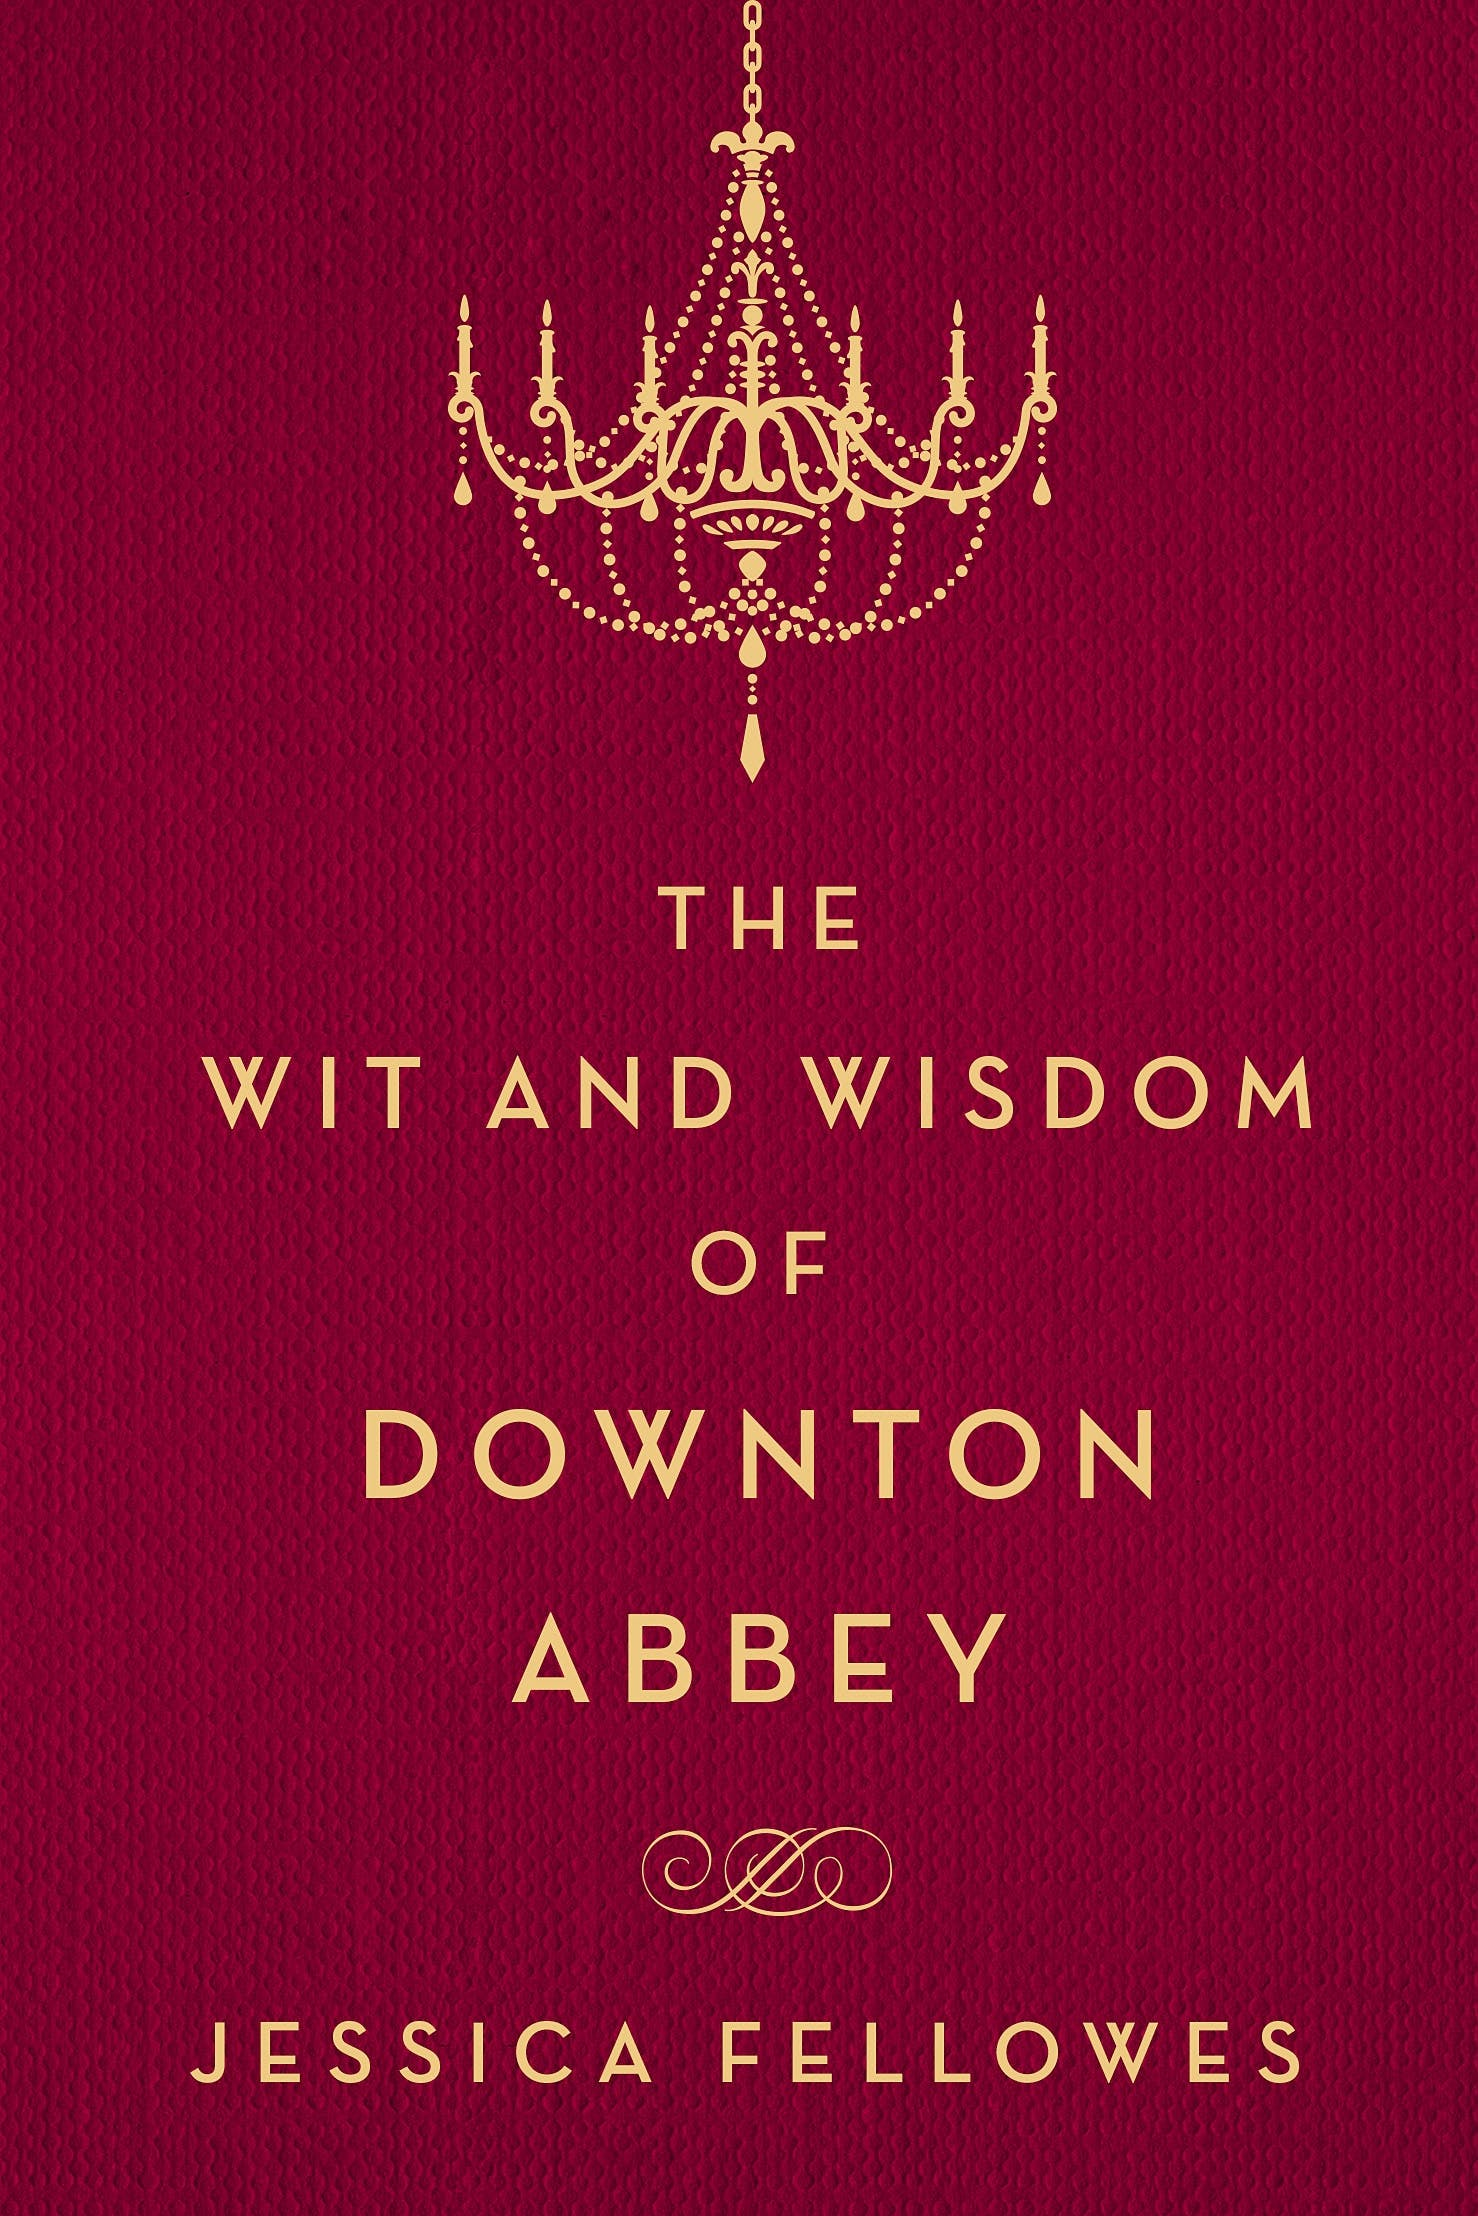 Image of The Wit and Wisdom of Downton Abbey